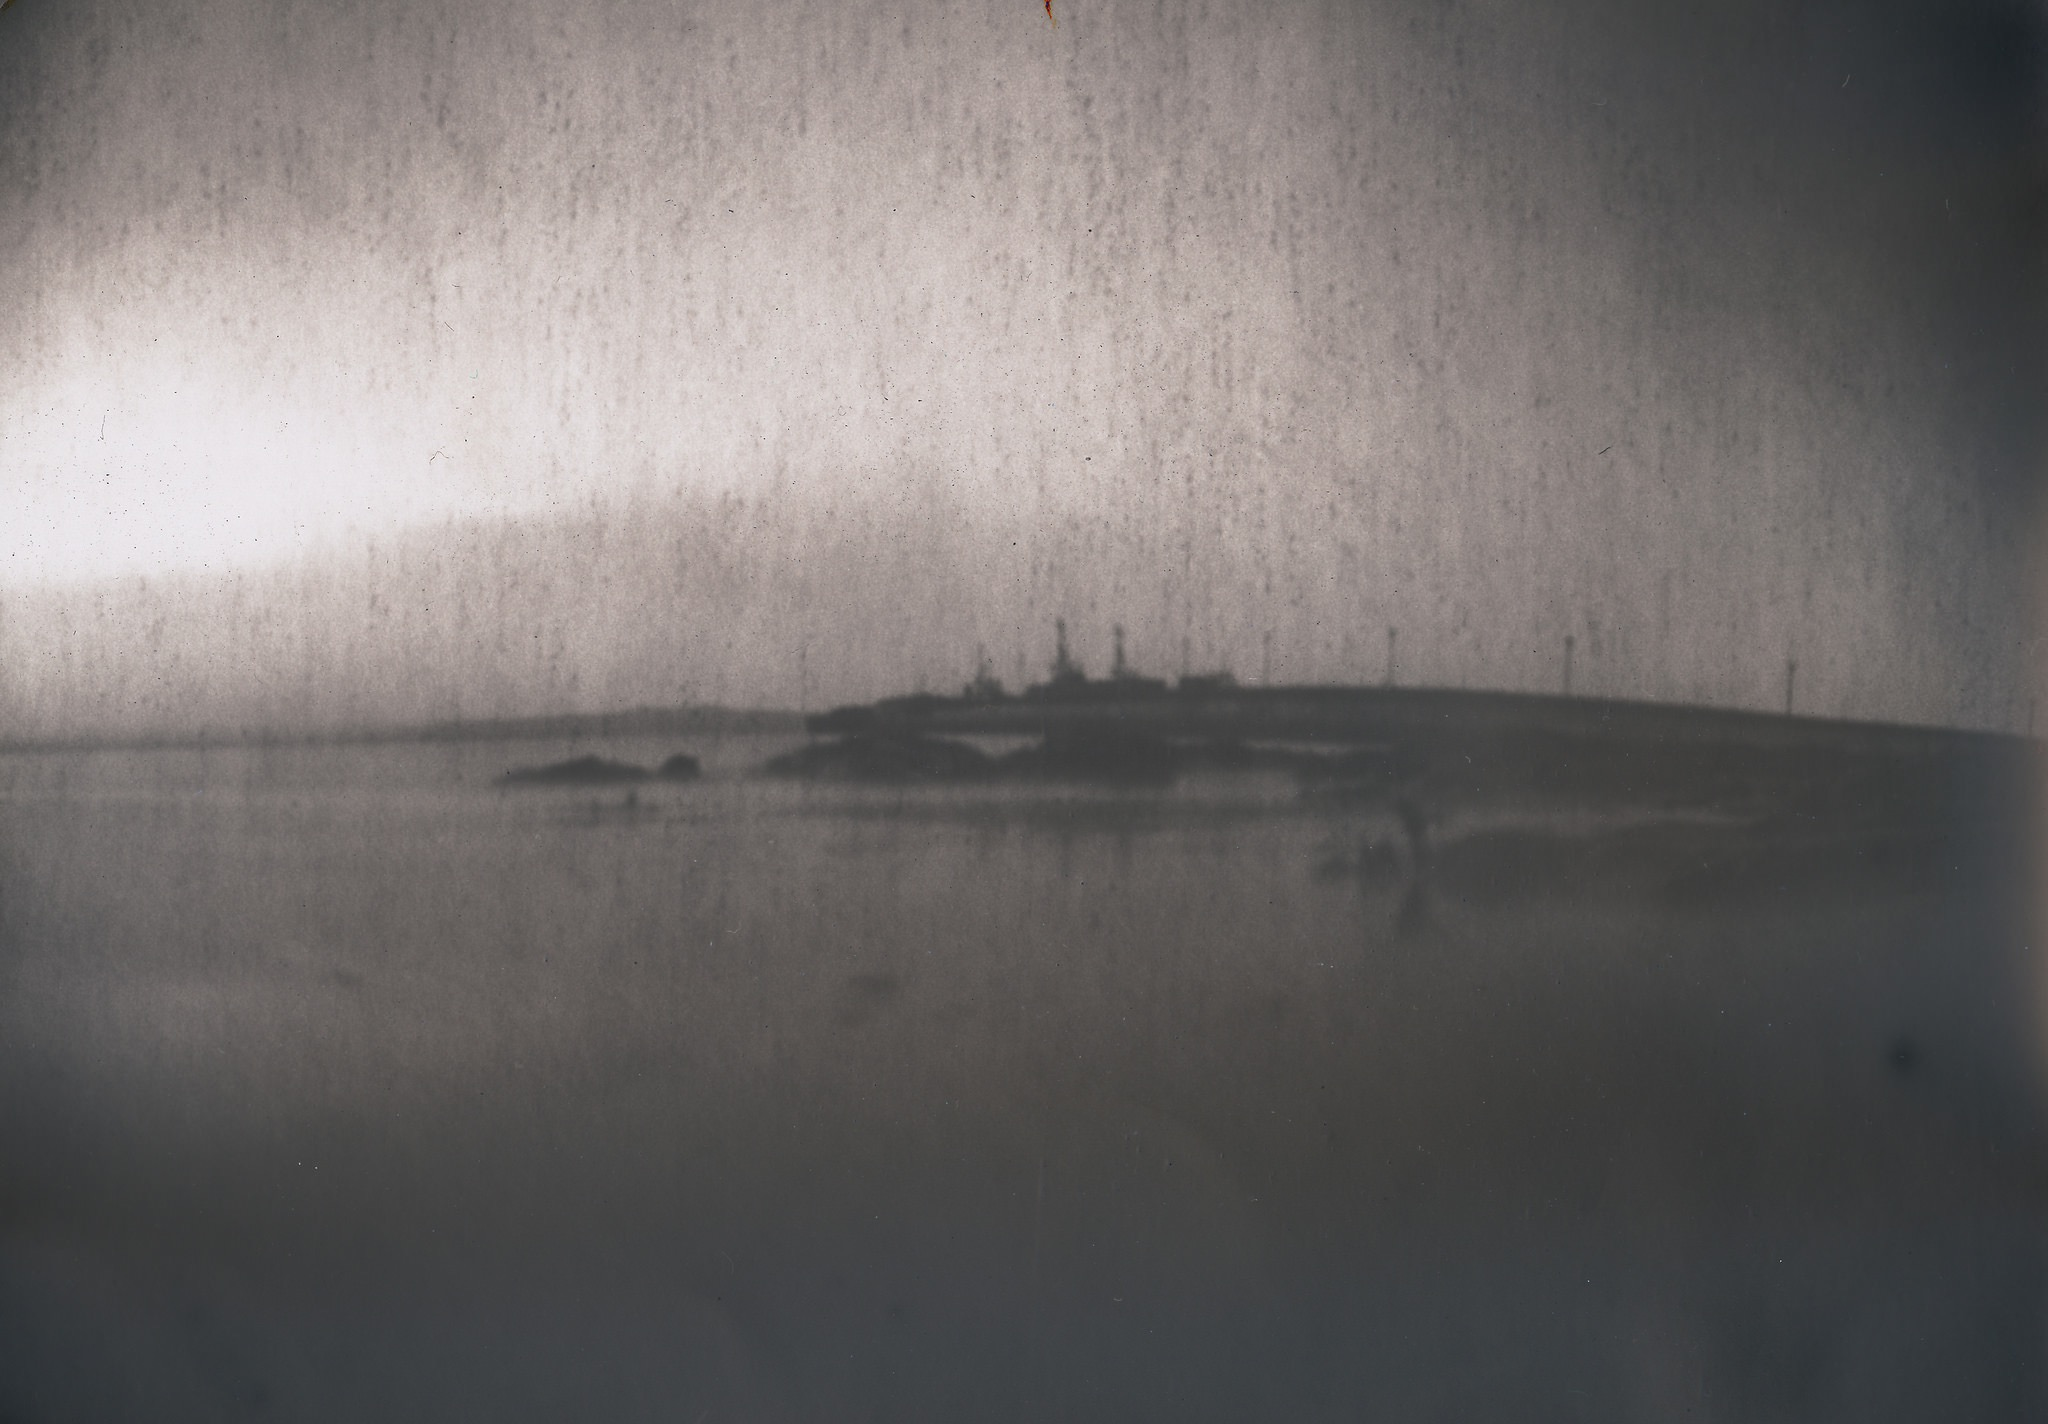 Scapa Pier, coffee can pinhole camera, 50 year old Ilford paper, ©Ingrid Budge